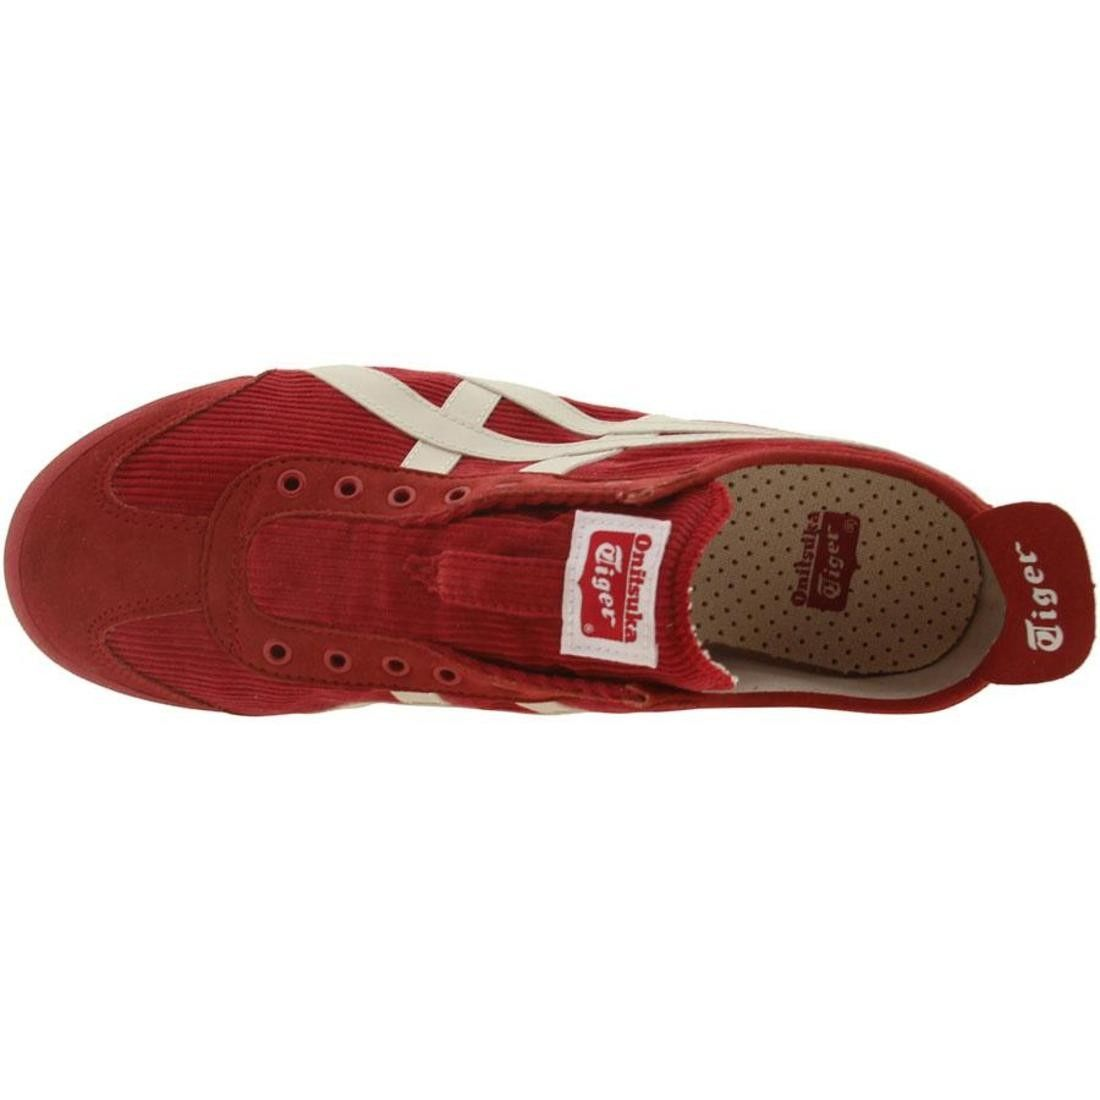 onitsuka tiger mexico 66 shoes online oficial store chile